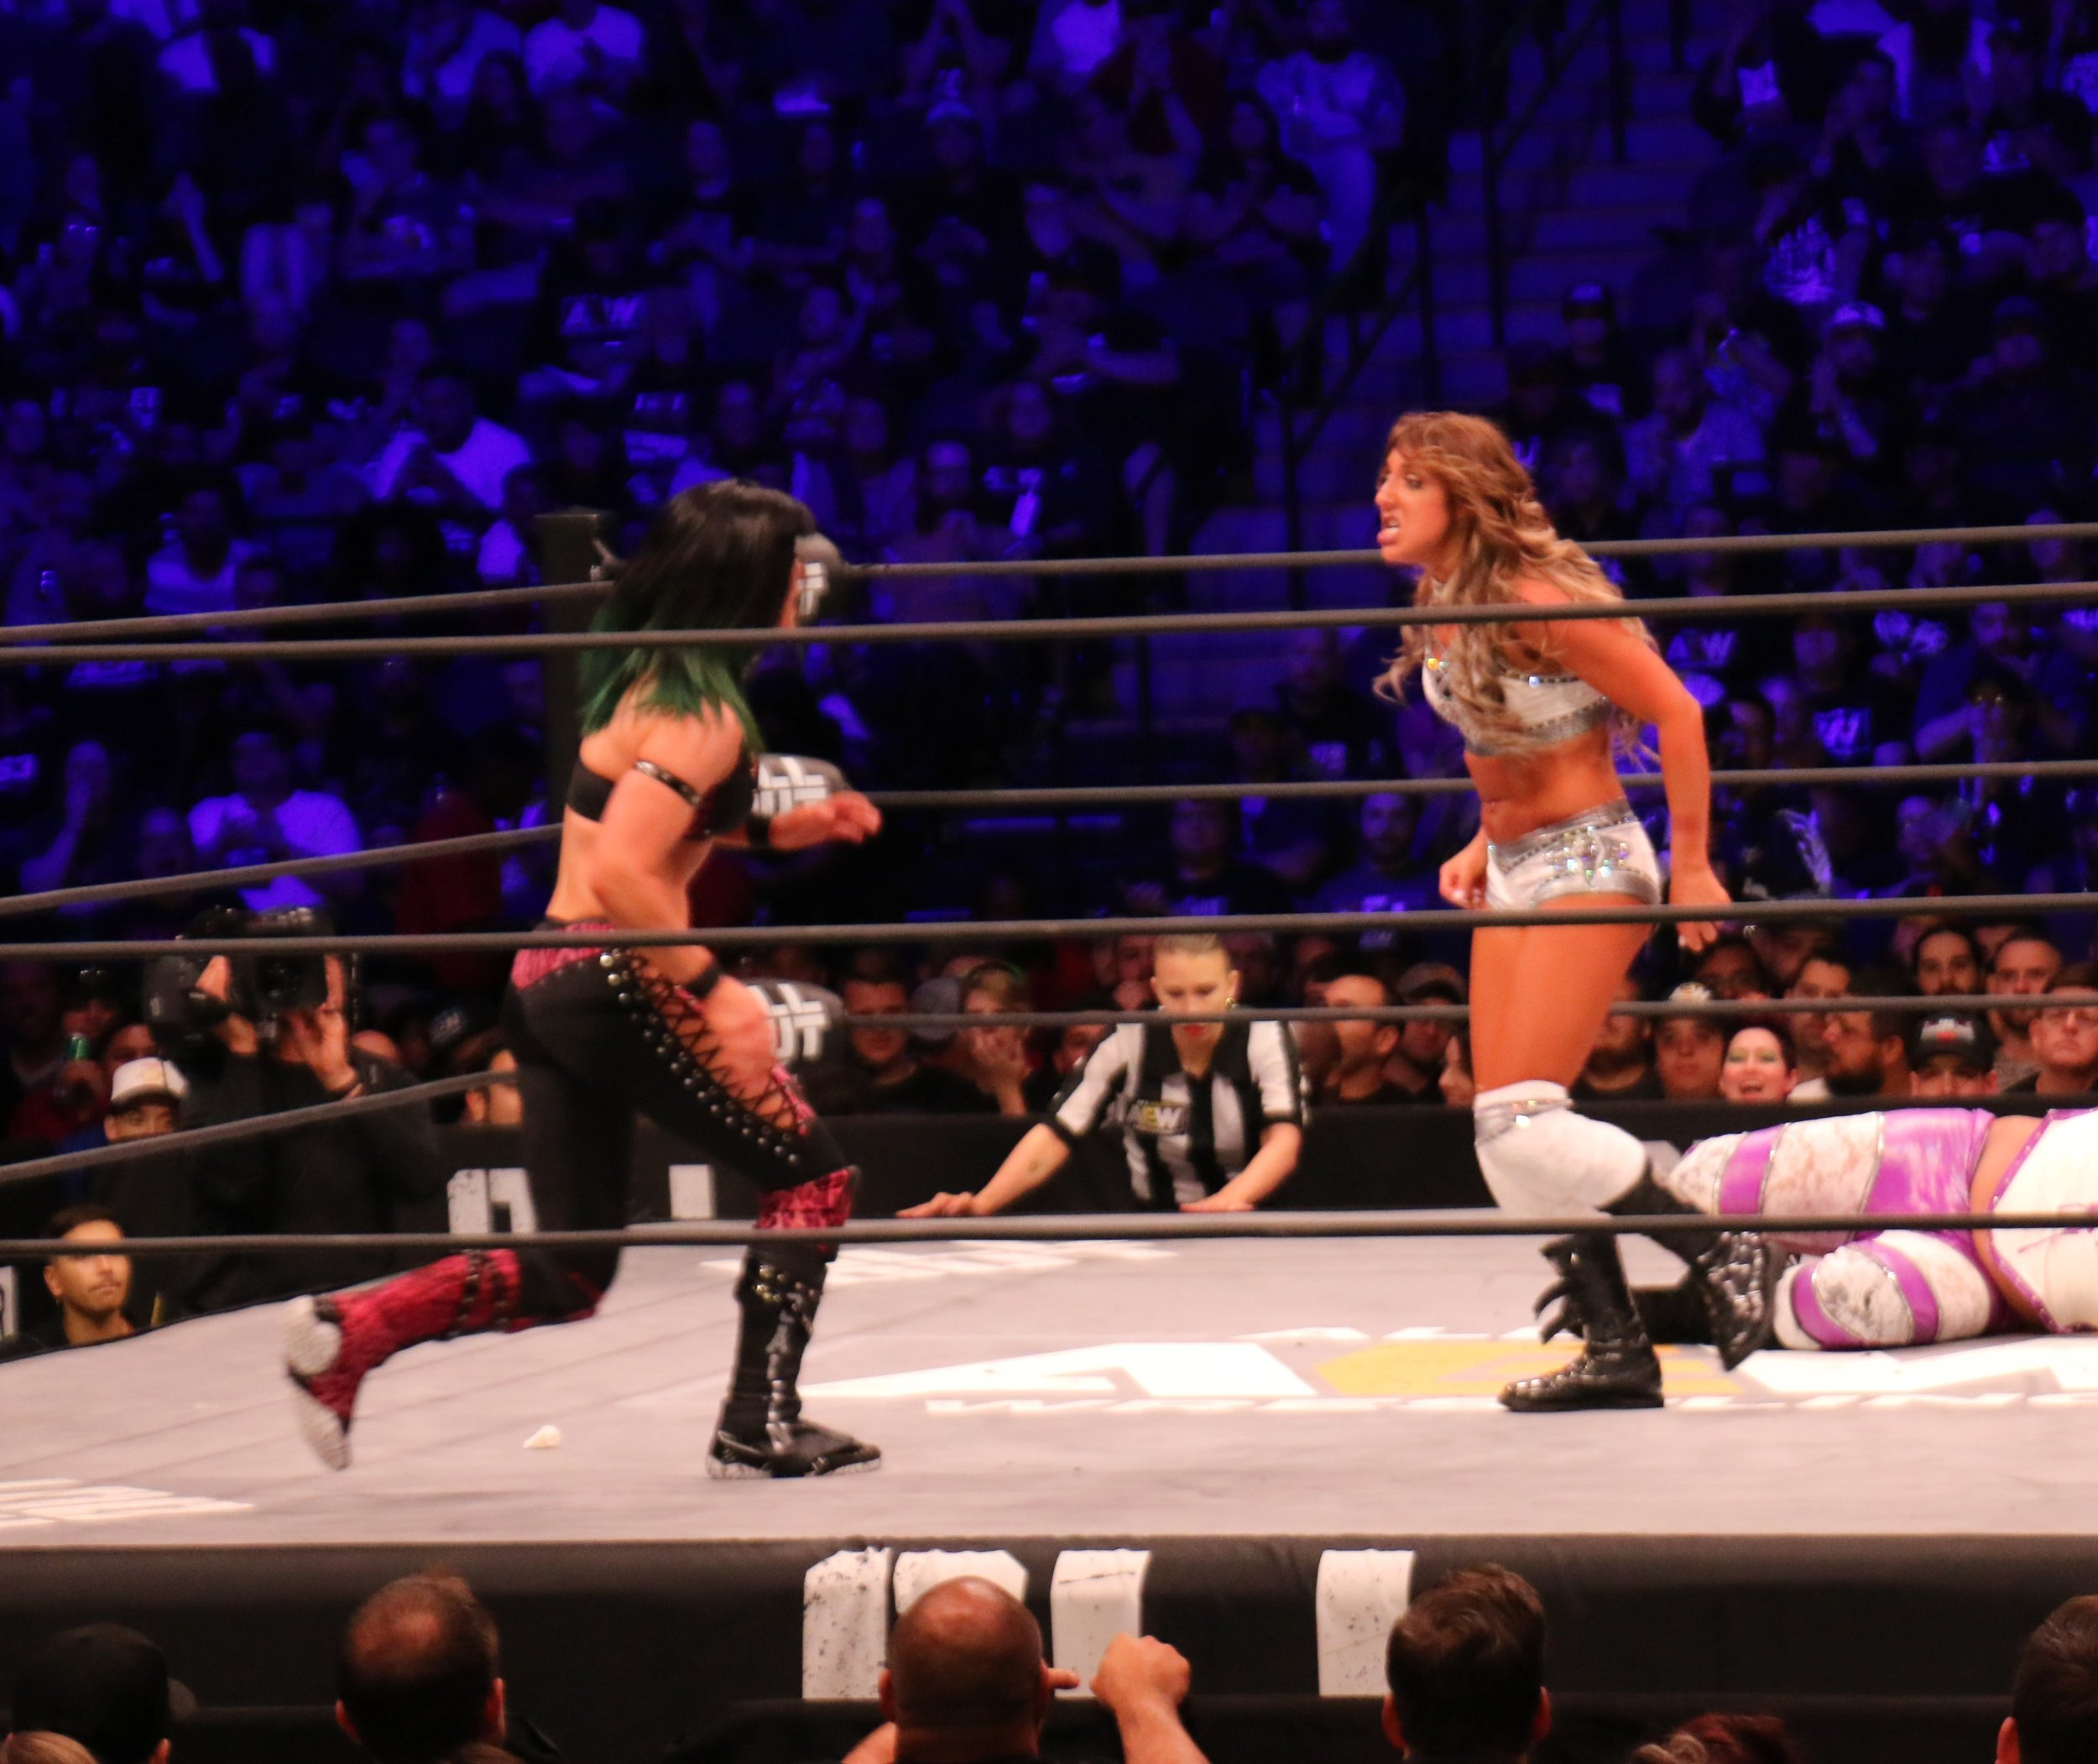 Bea Priestly, left, and Britt Baker face off during the Casino Battle Royale.